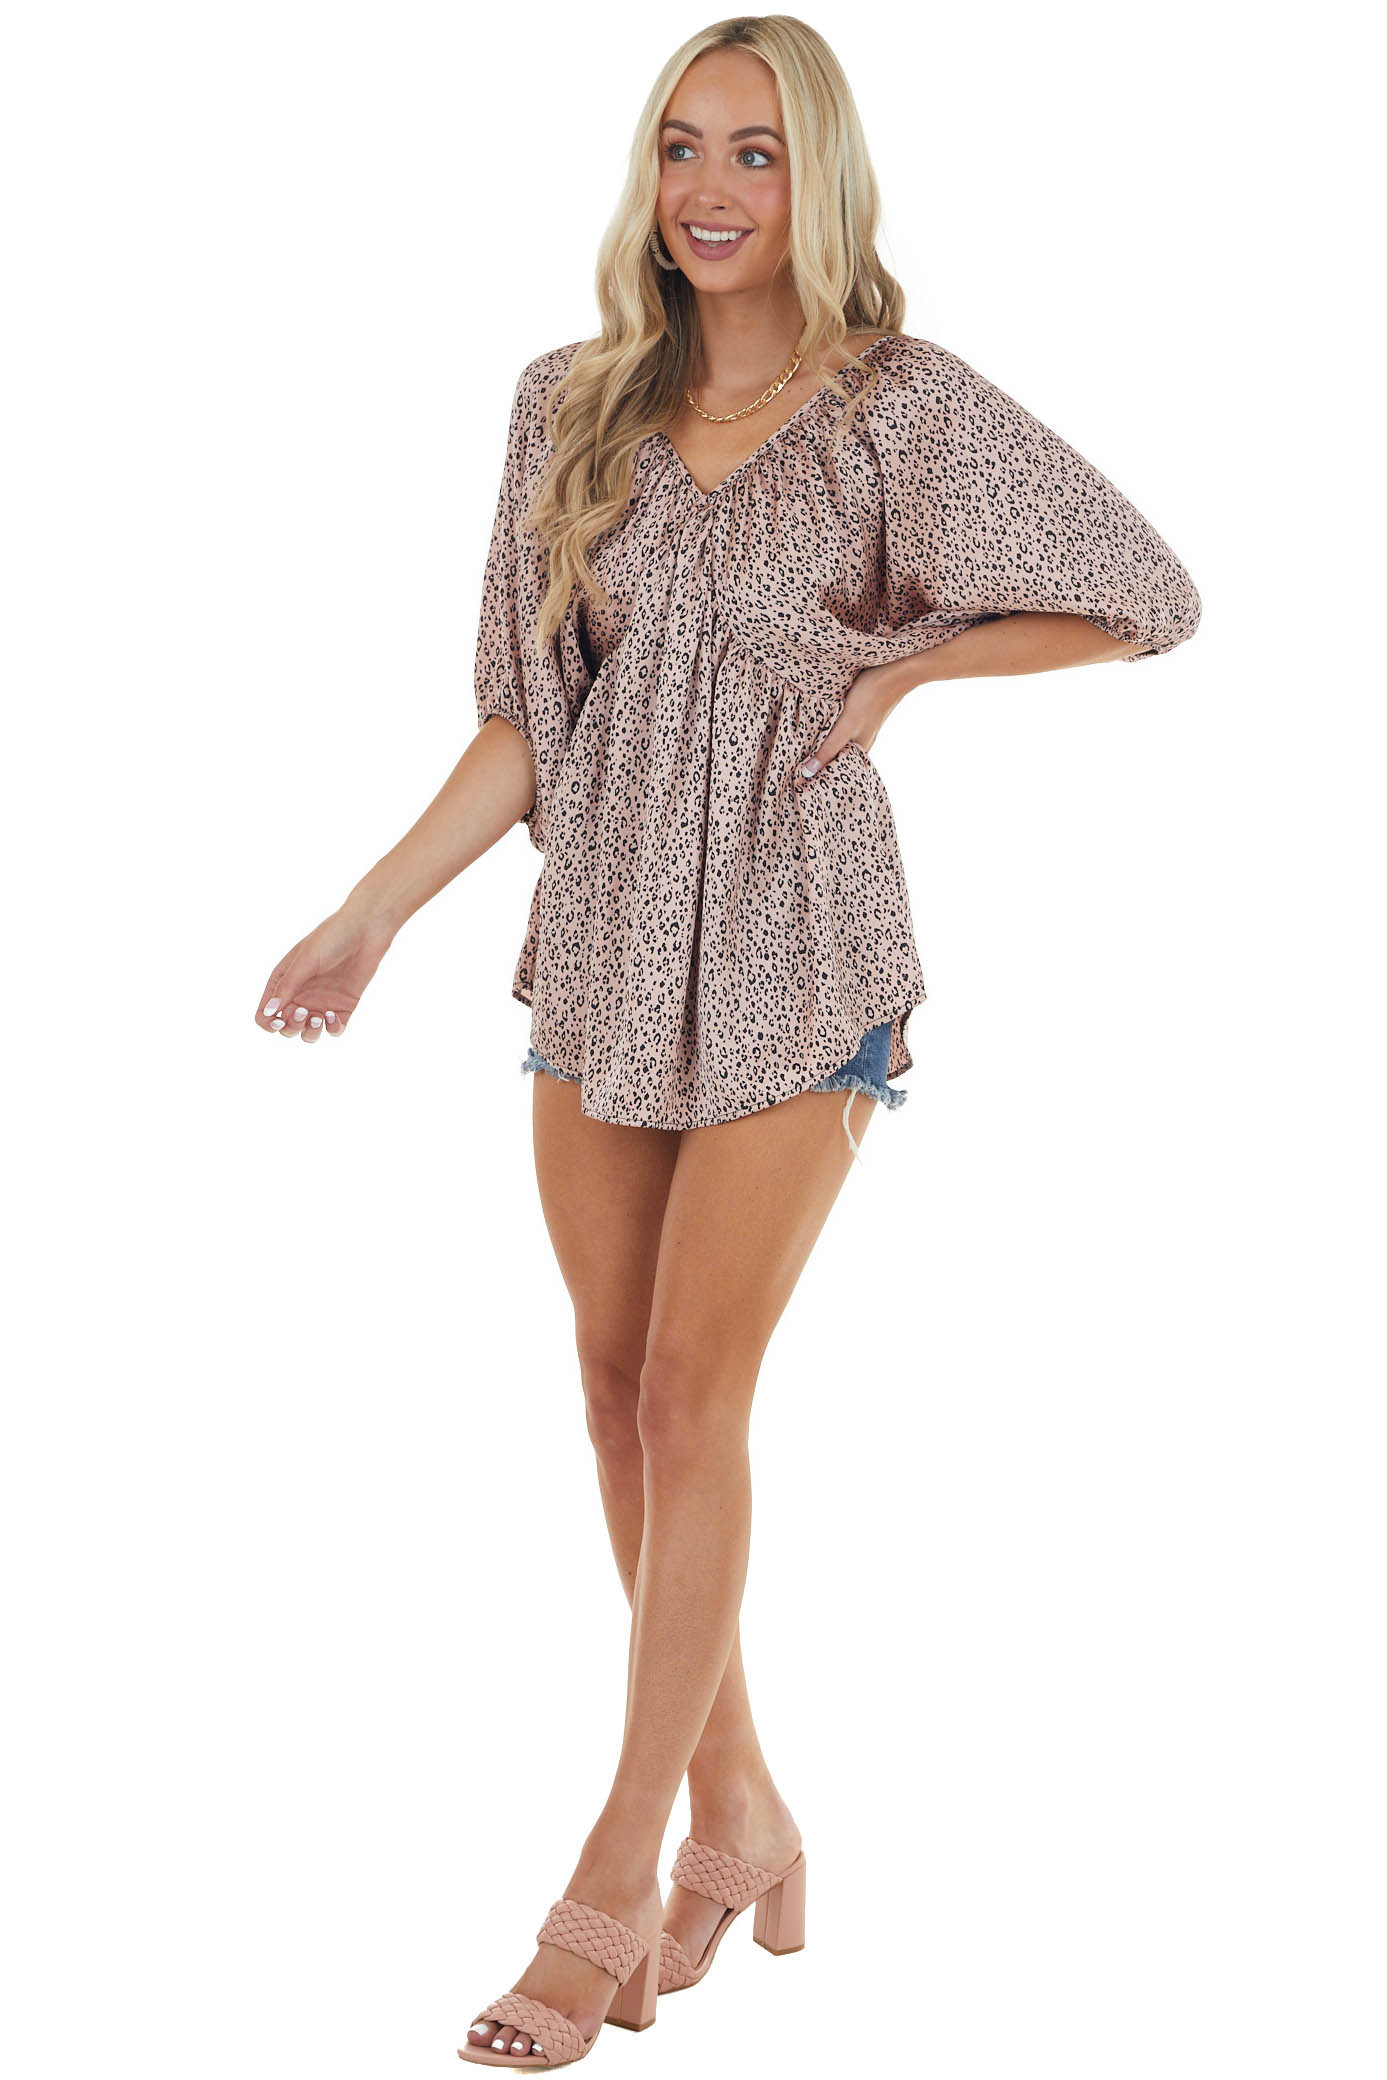 Dusty Blush Leopard Print V Neck Baby Doll Woven Top